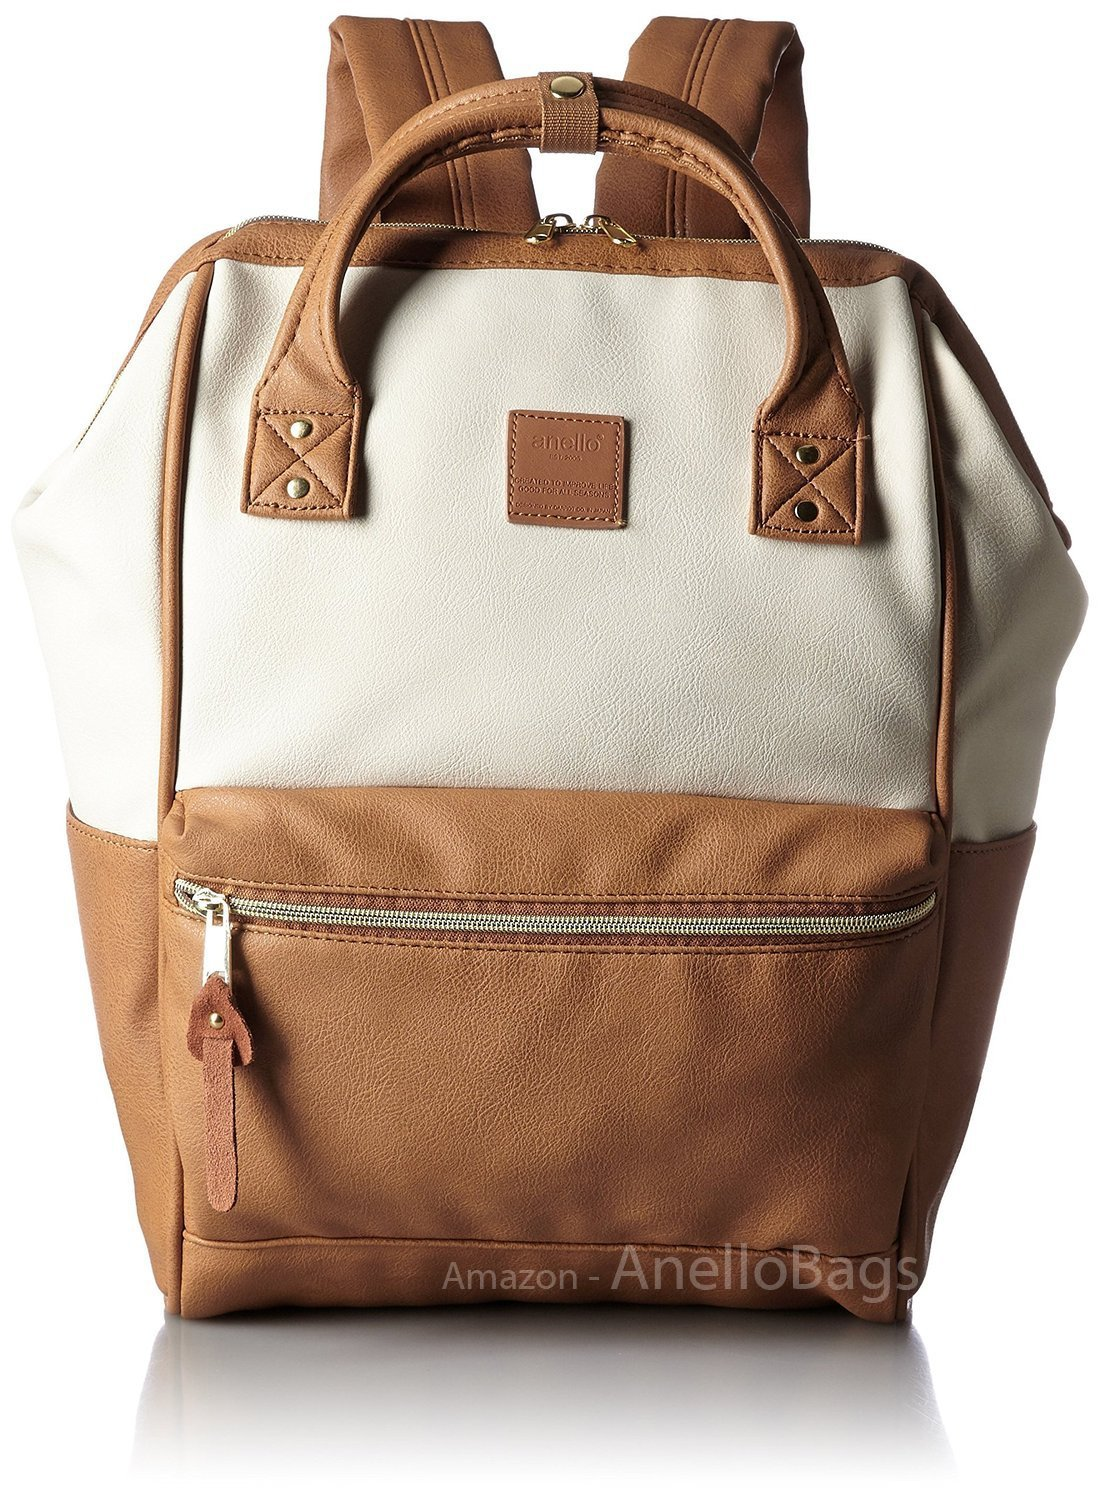 6e0cf81150 Get Quotations · Japan Anello Backpack Unisex IVORY x CAMEL LARGE PU  LEATHER Rucksack Bag Campus